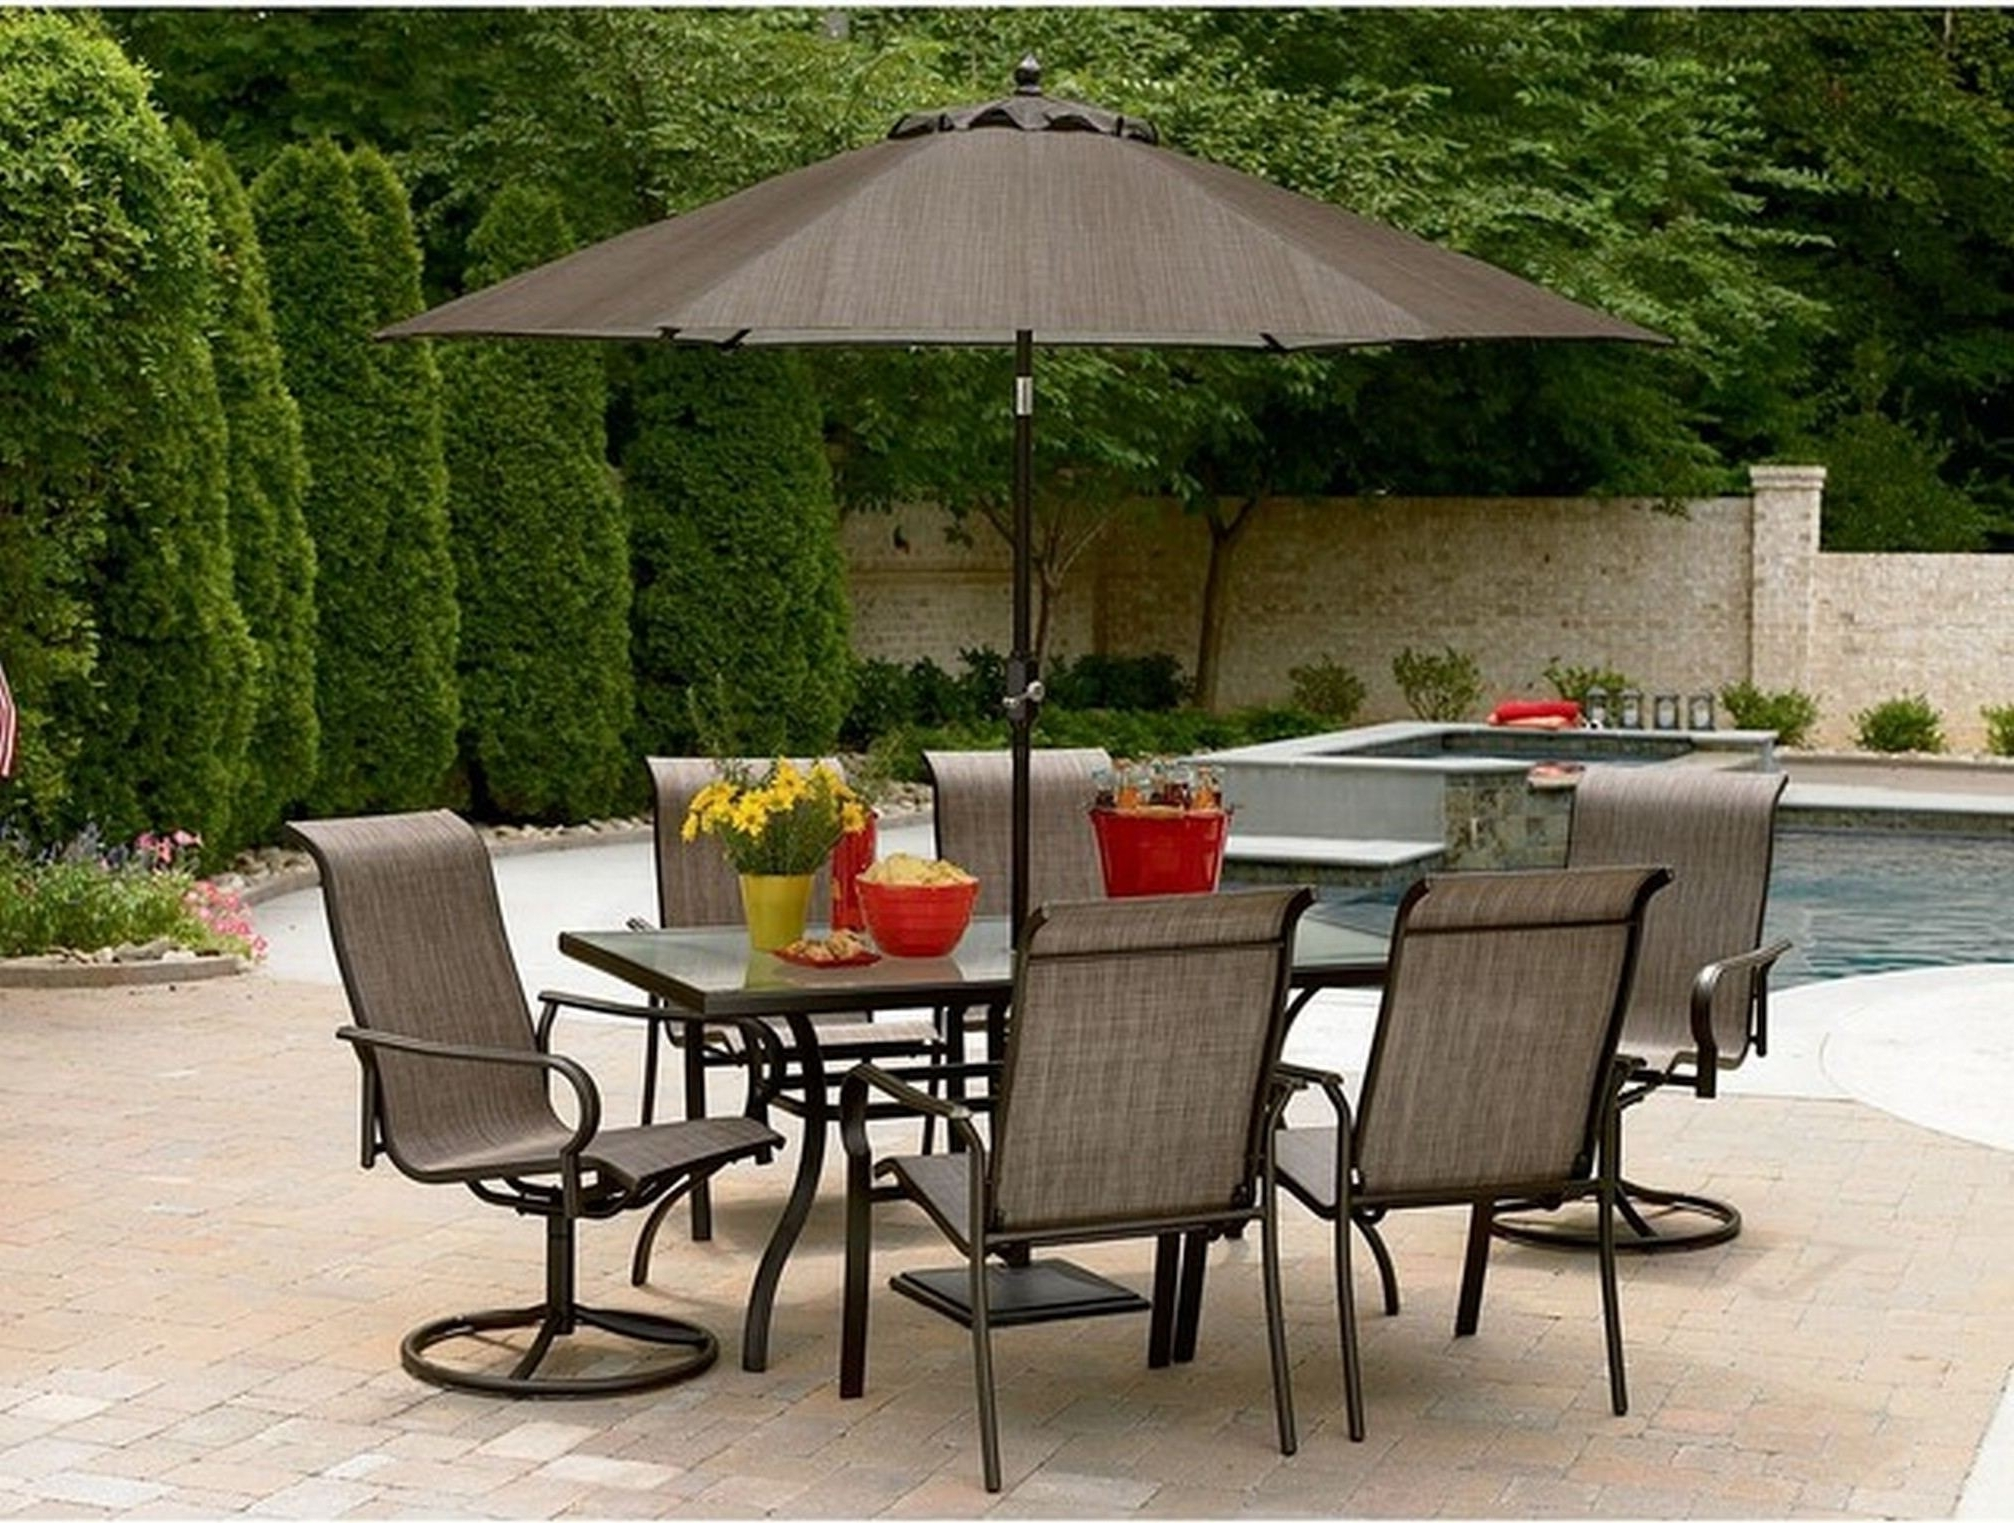 Interior : Patio Furniture Sale Stylish Outdoor Table Sets Lovely Intended For Trendy Patio Table Sets With Umbrellas (Gallery 18 of 20)